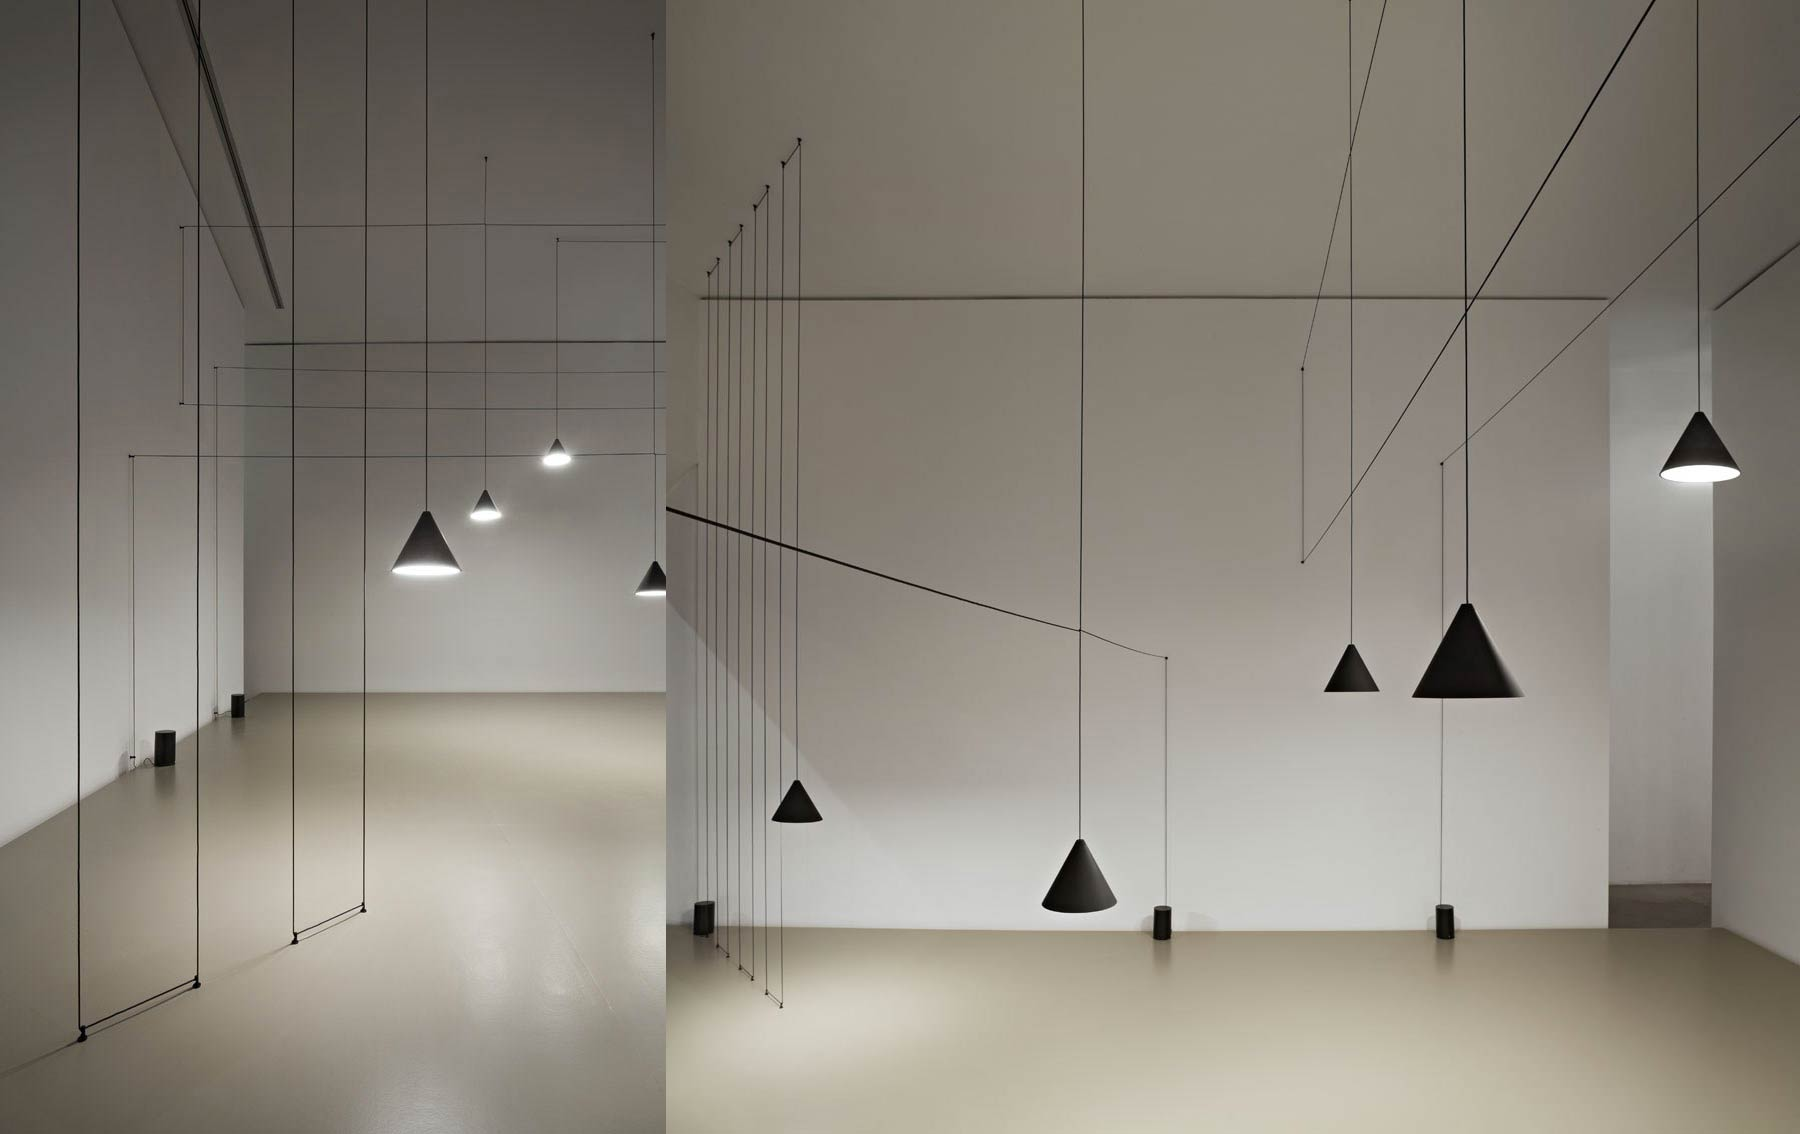 Simple lamps with long cables crossing the room